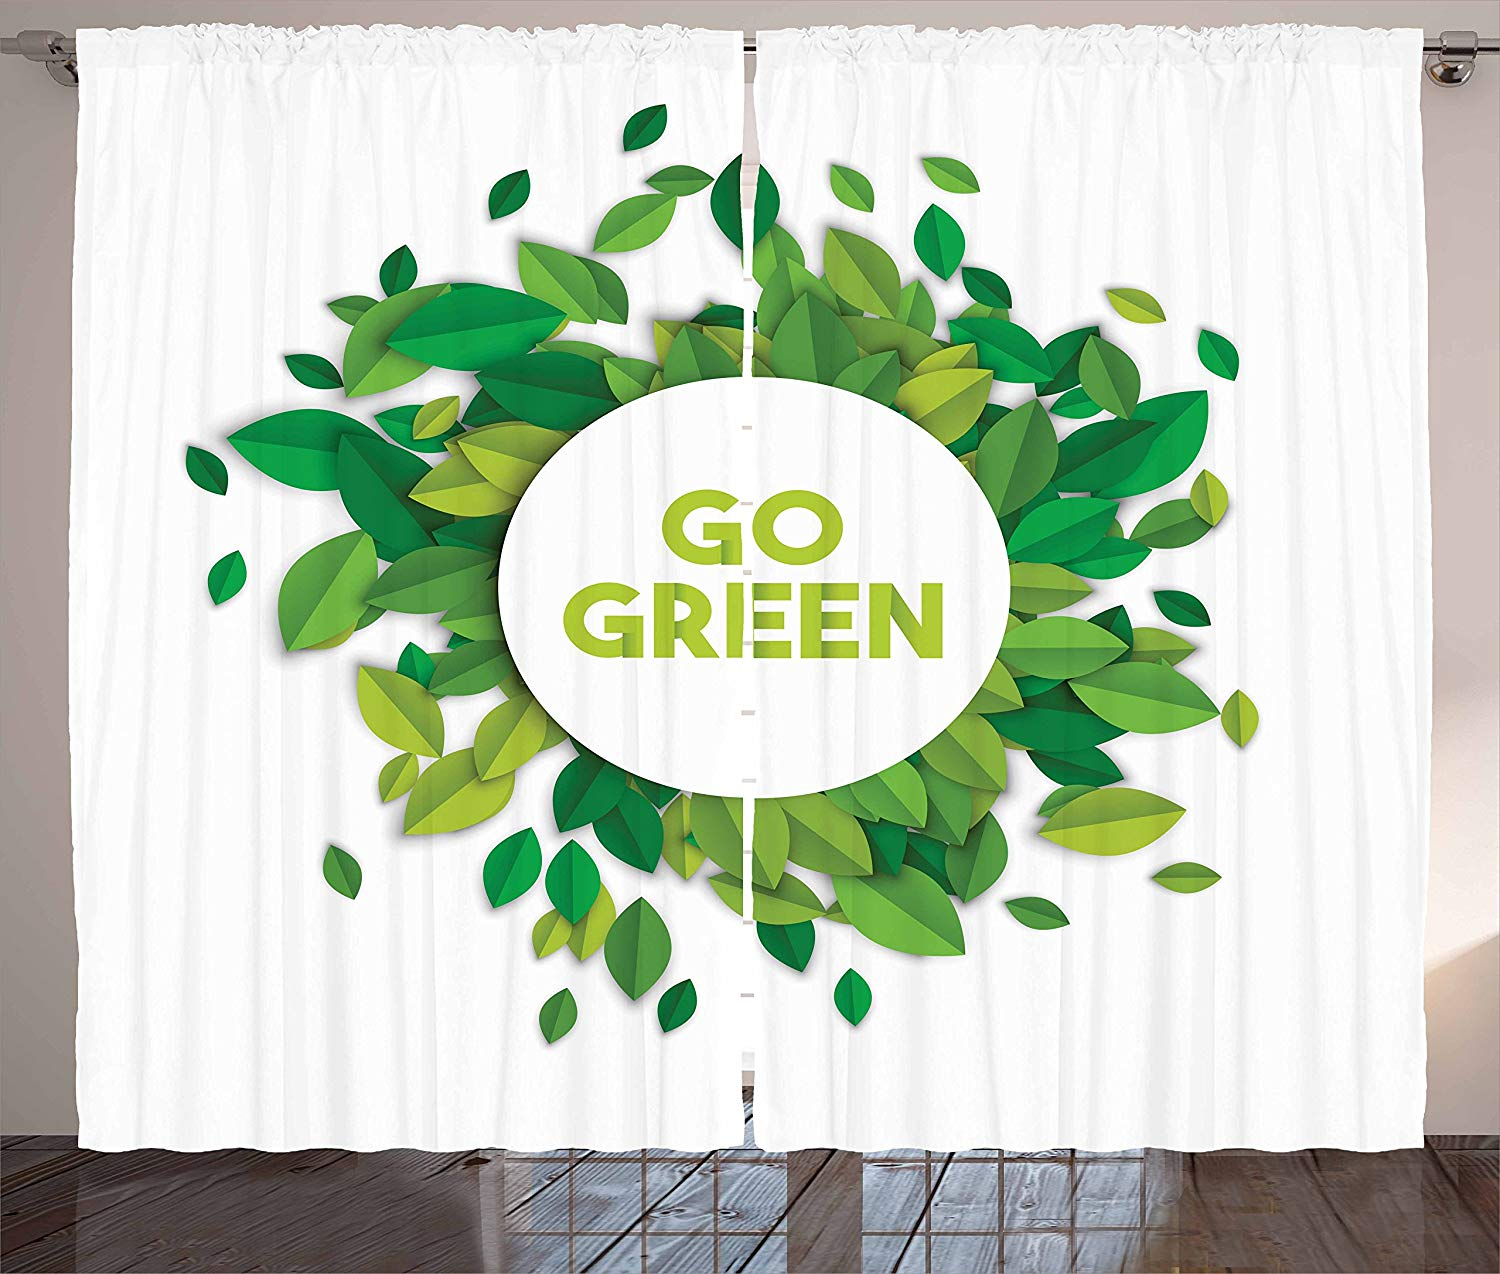 Quote Curtains Go Green Text Inside a White Circle with Leaves Eco Awareness Living Room Bedroom Window Decor Panel Set image